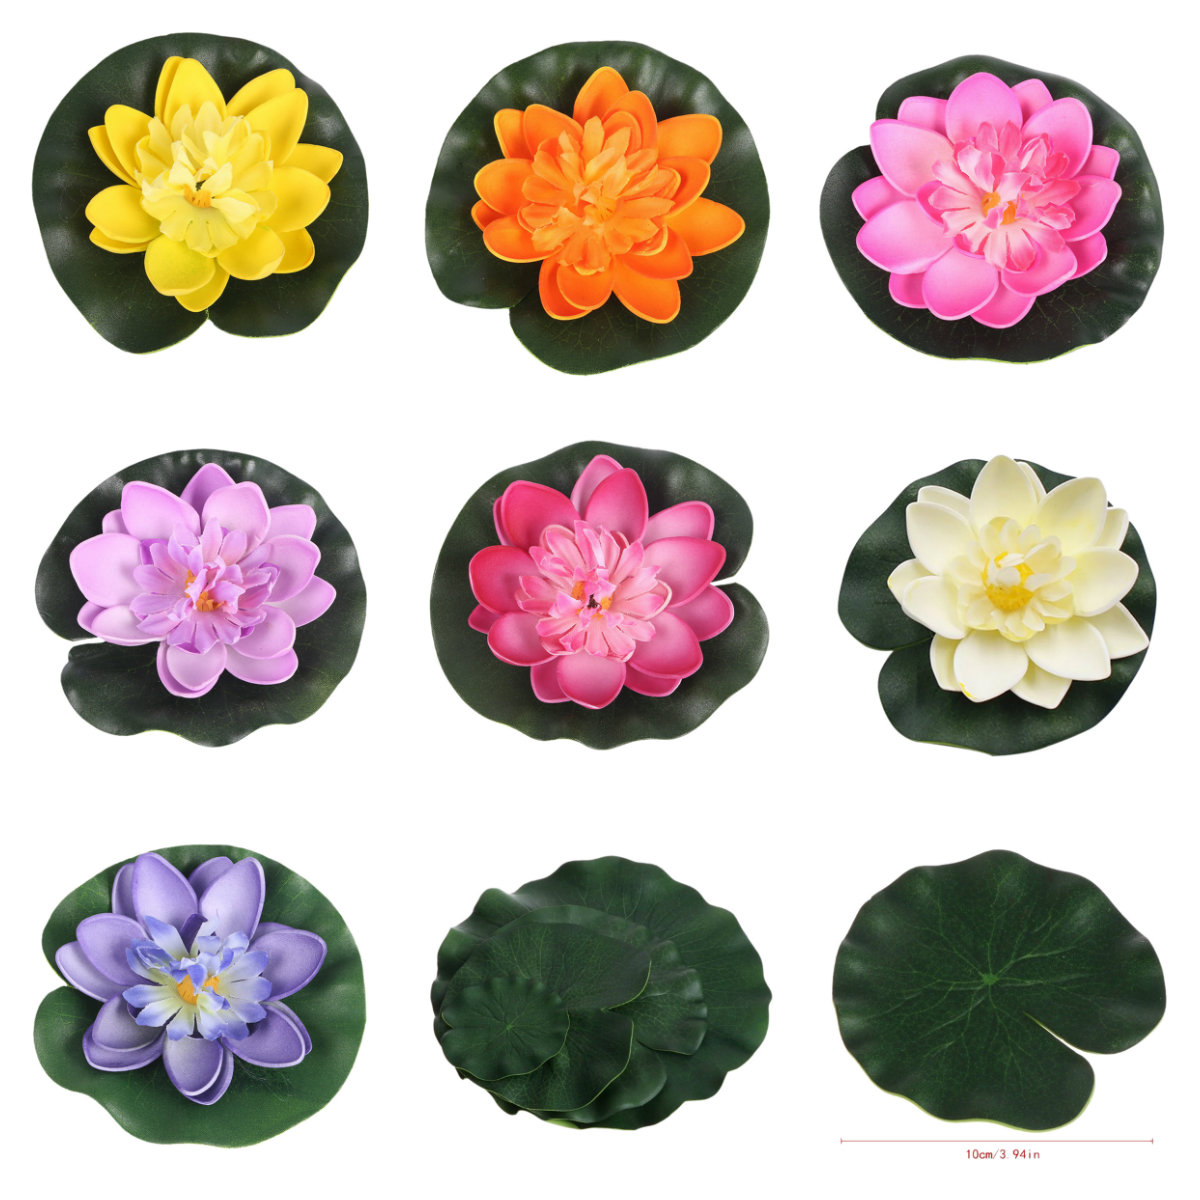 1PCS 10CM Decor Garden Artificial Fake Lotus Flower Foam Lotus Flowers Water Lily Floating Pool Plants Wedding Garden Decoration